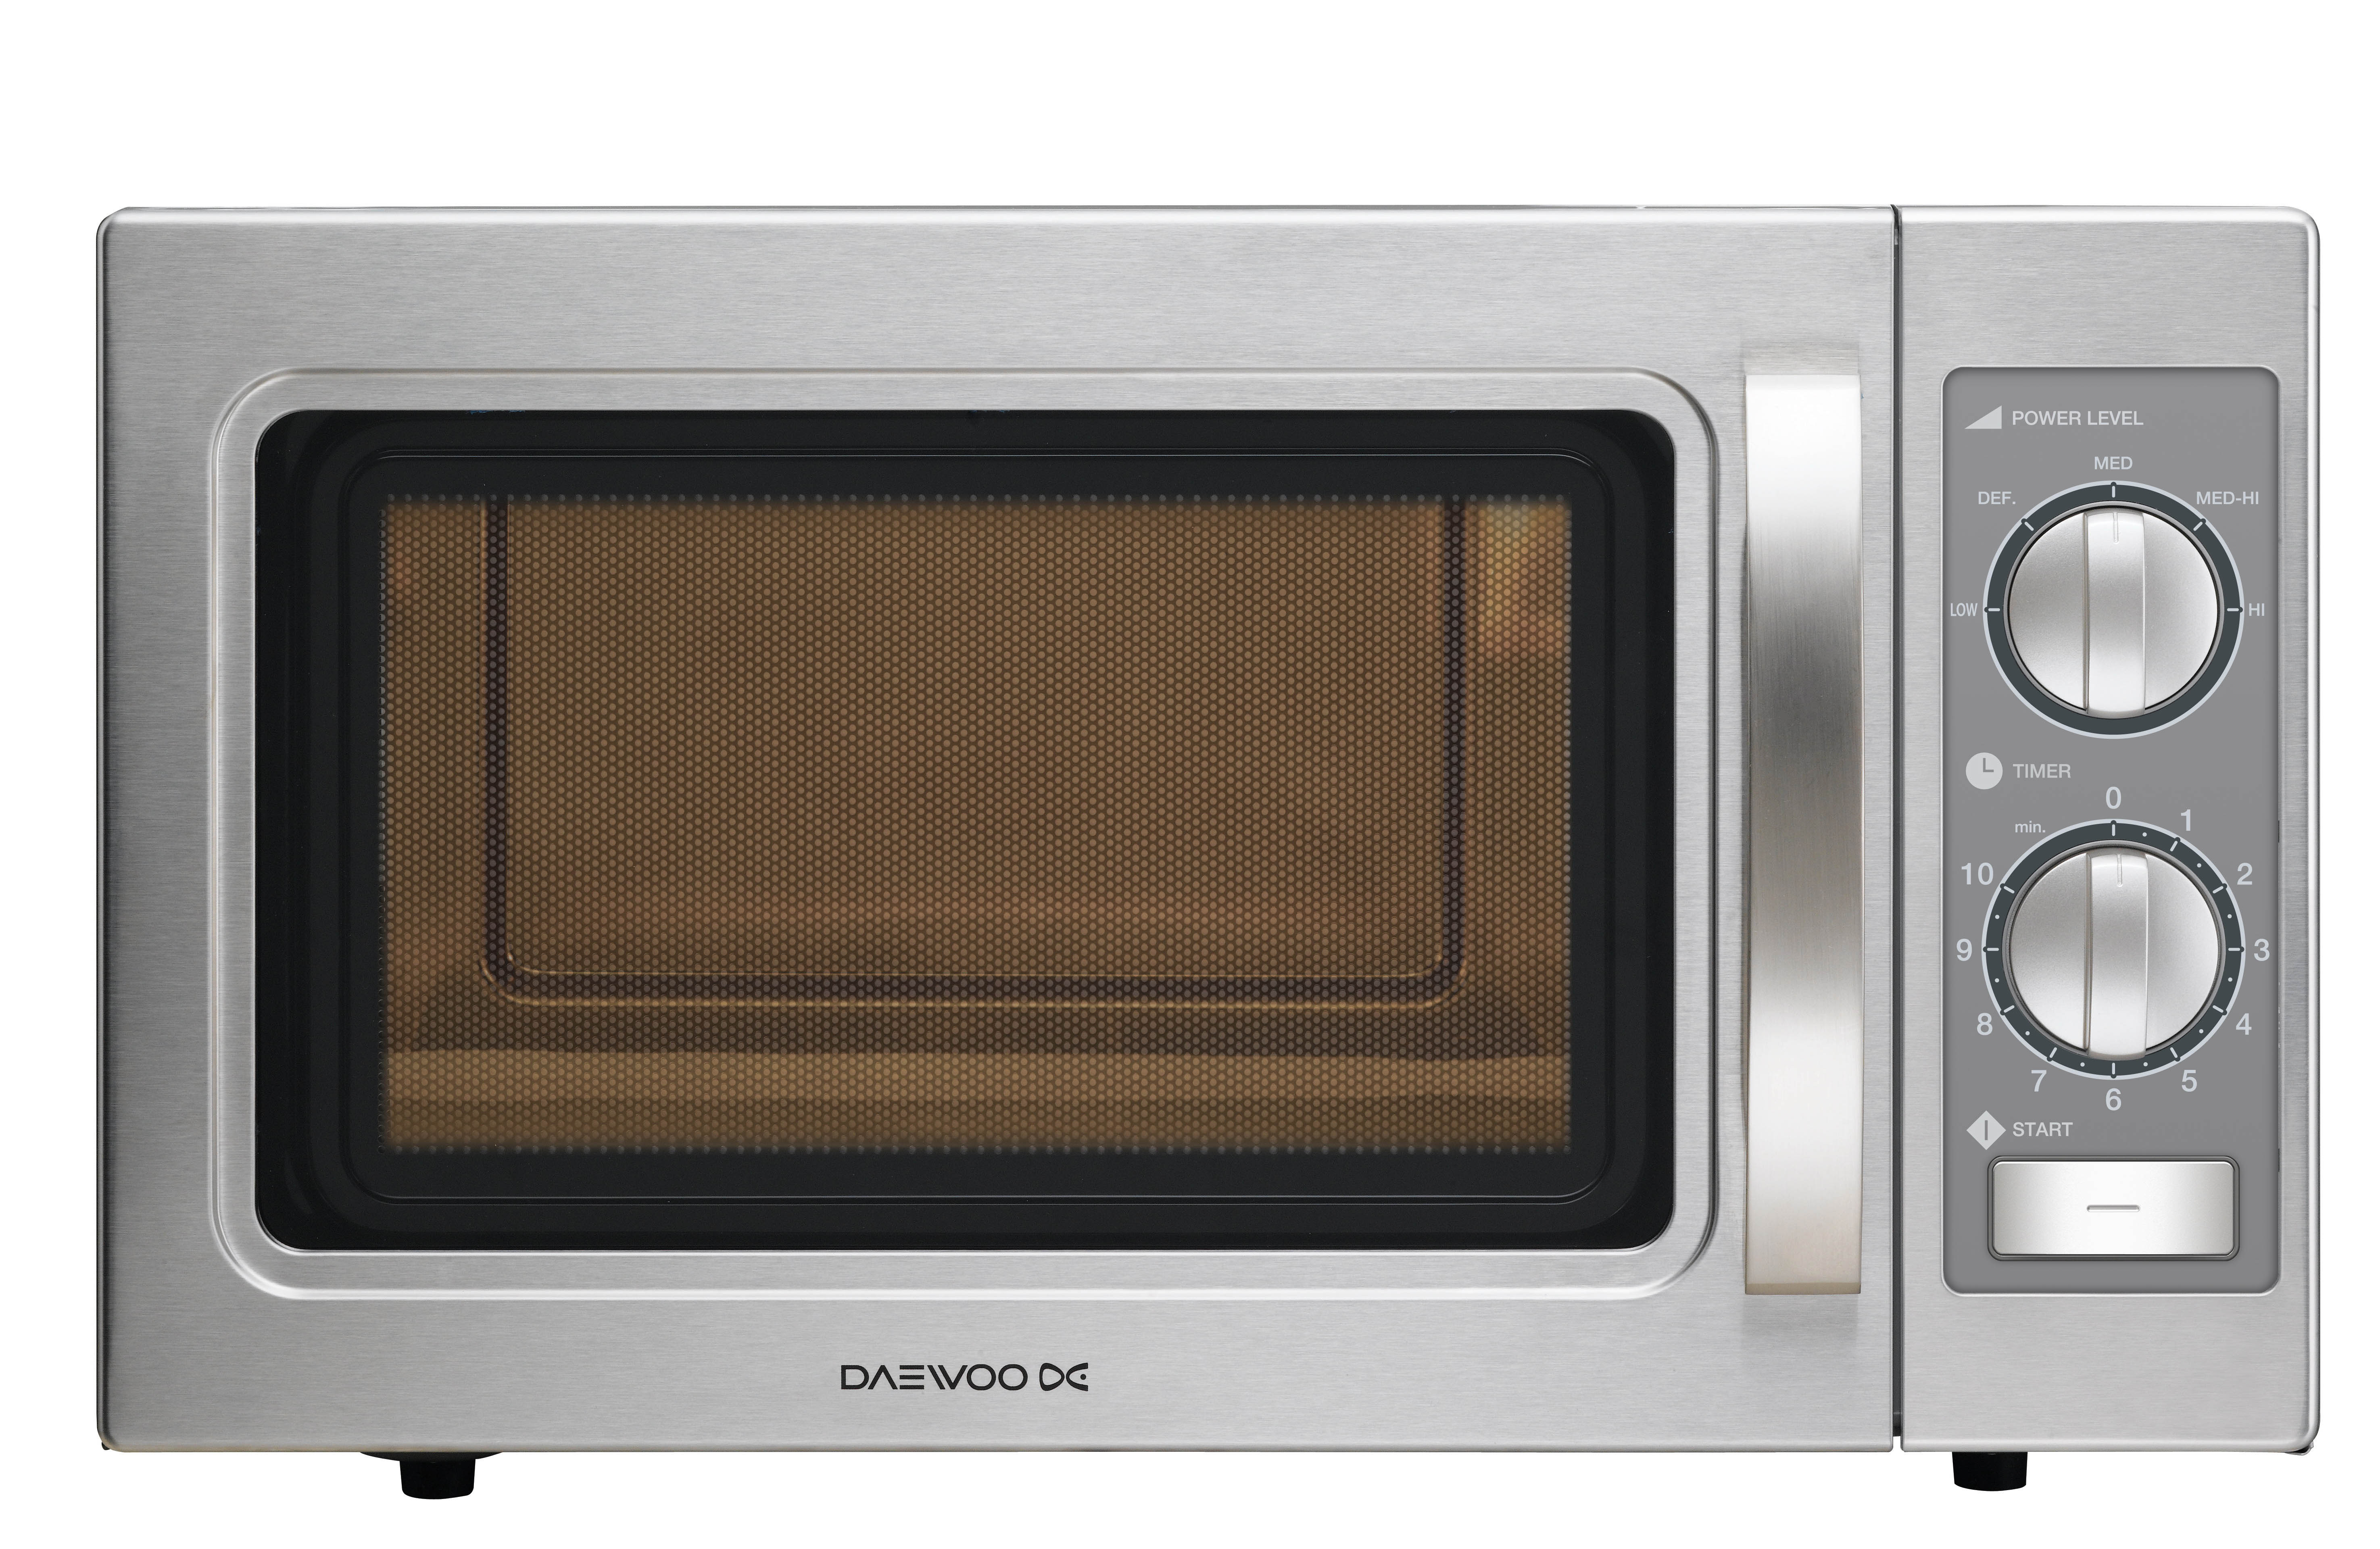 Daewoo Commercial Microwave Ovens - Regale